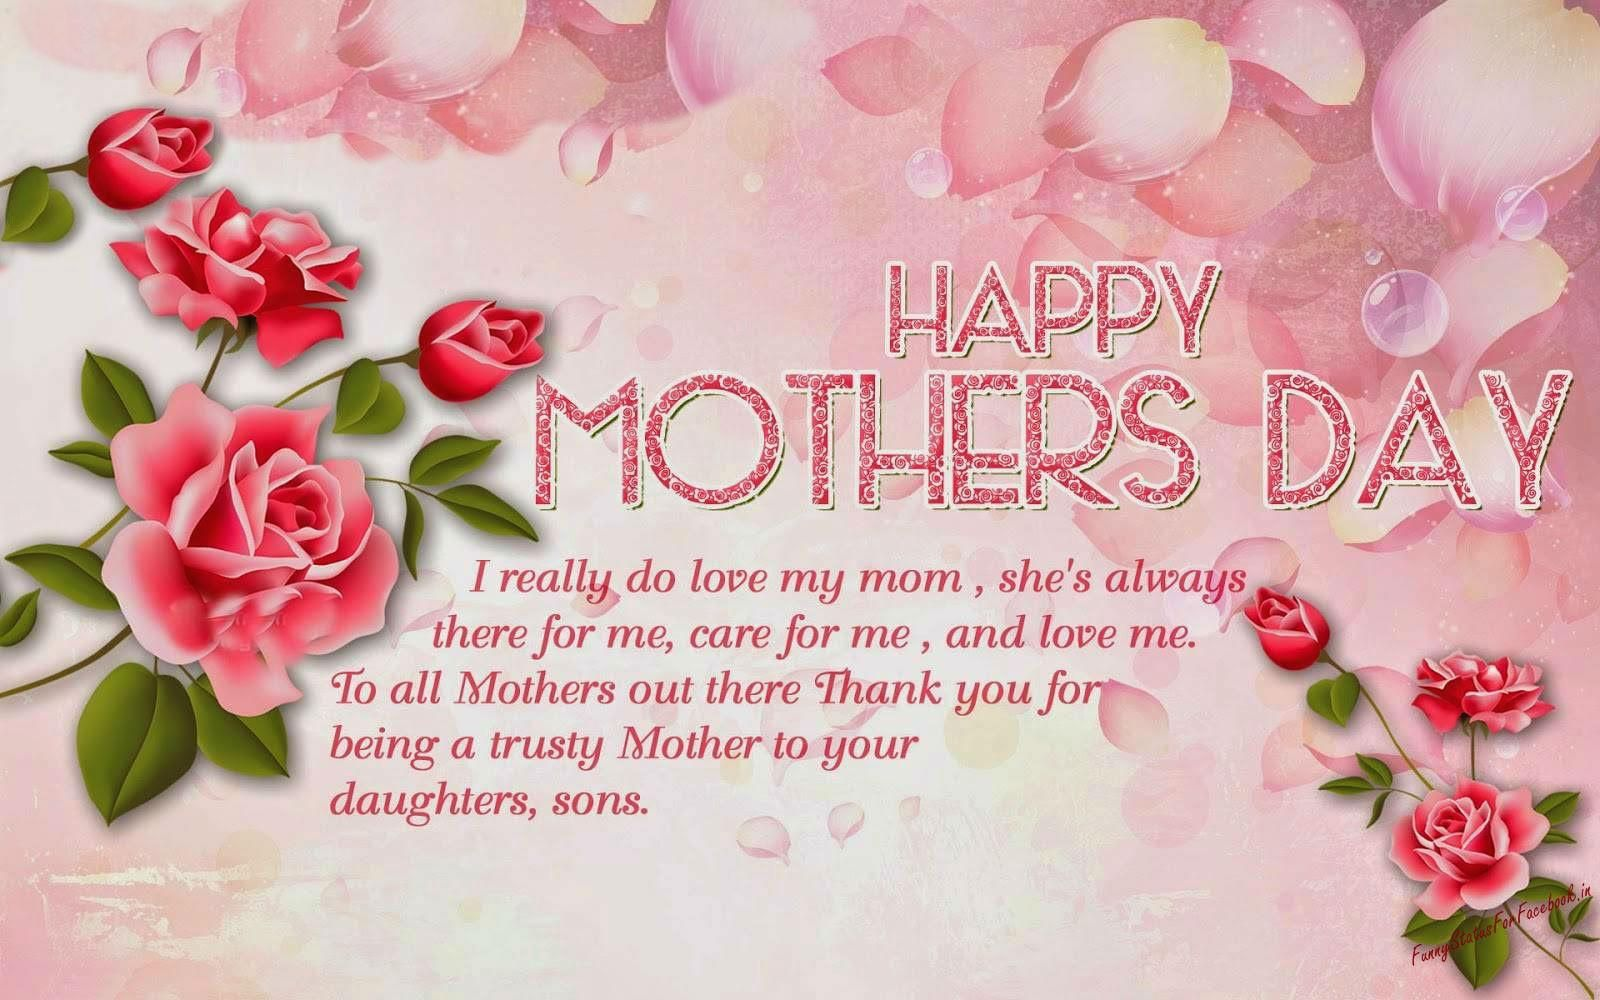 Beautiful happy mothers day greetings for my mom pinterest beautiful happy mothers day greetings kristyandbryce Images